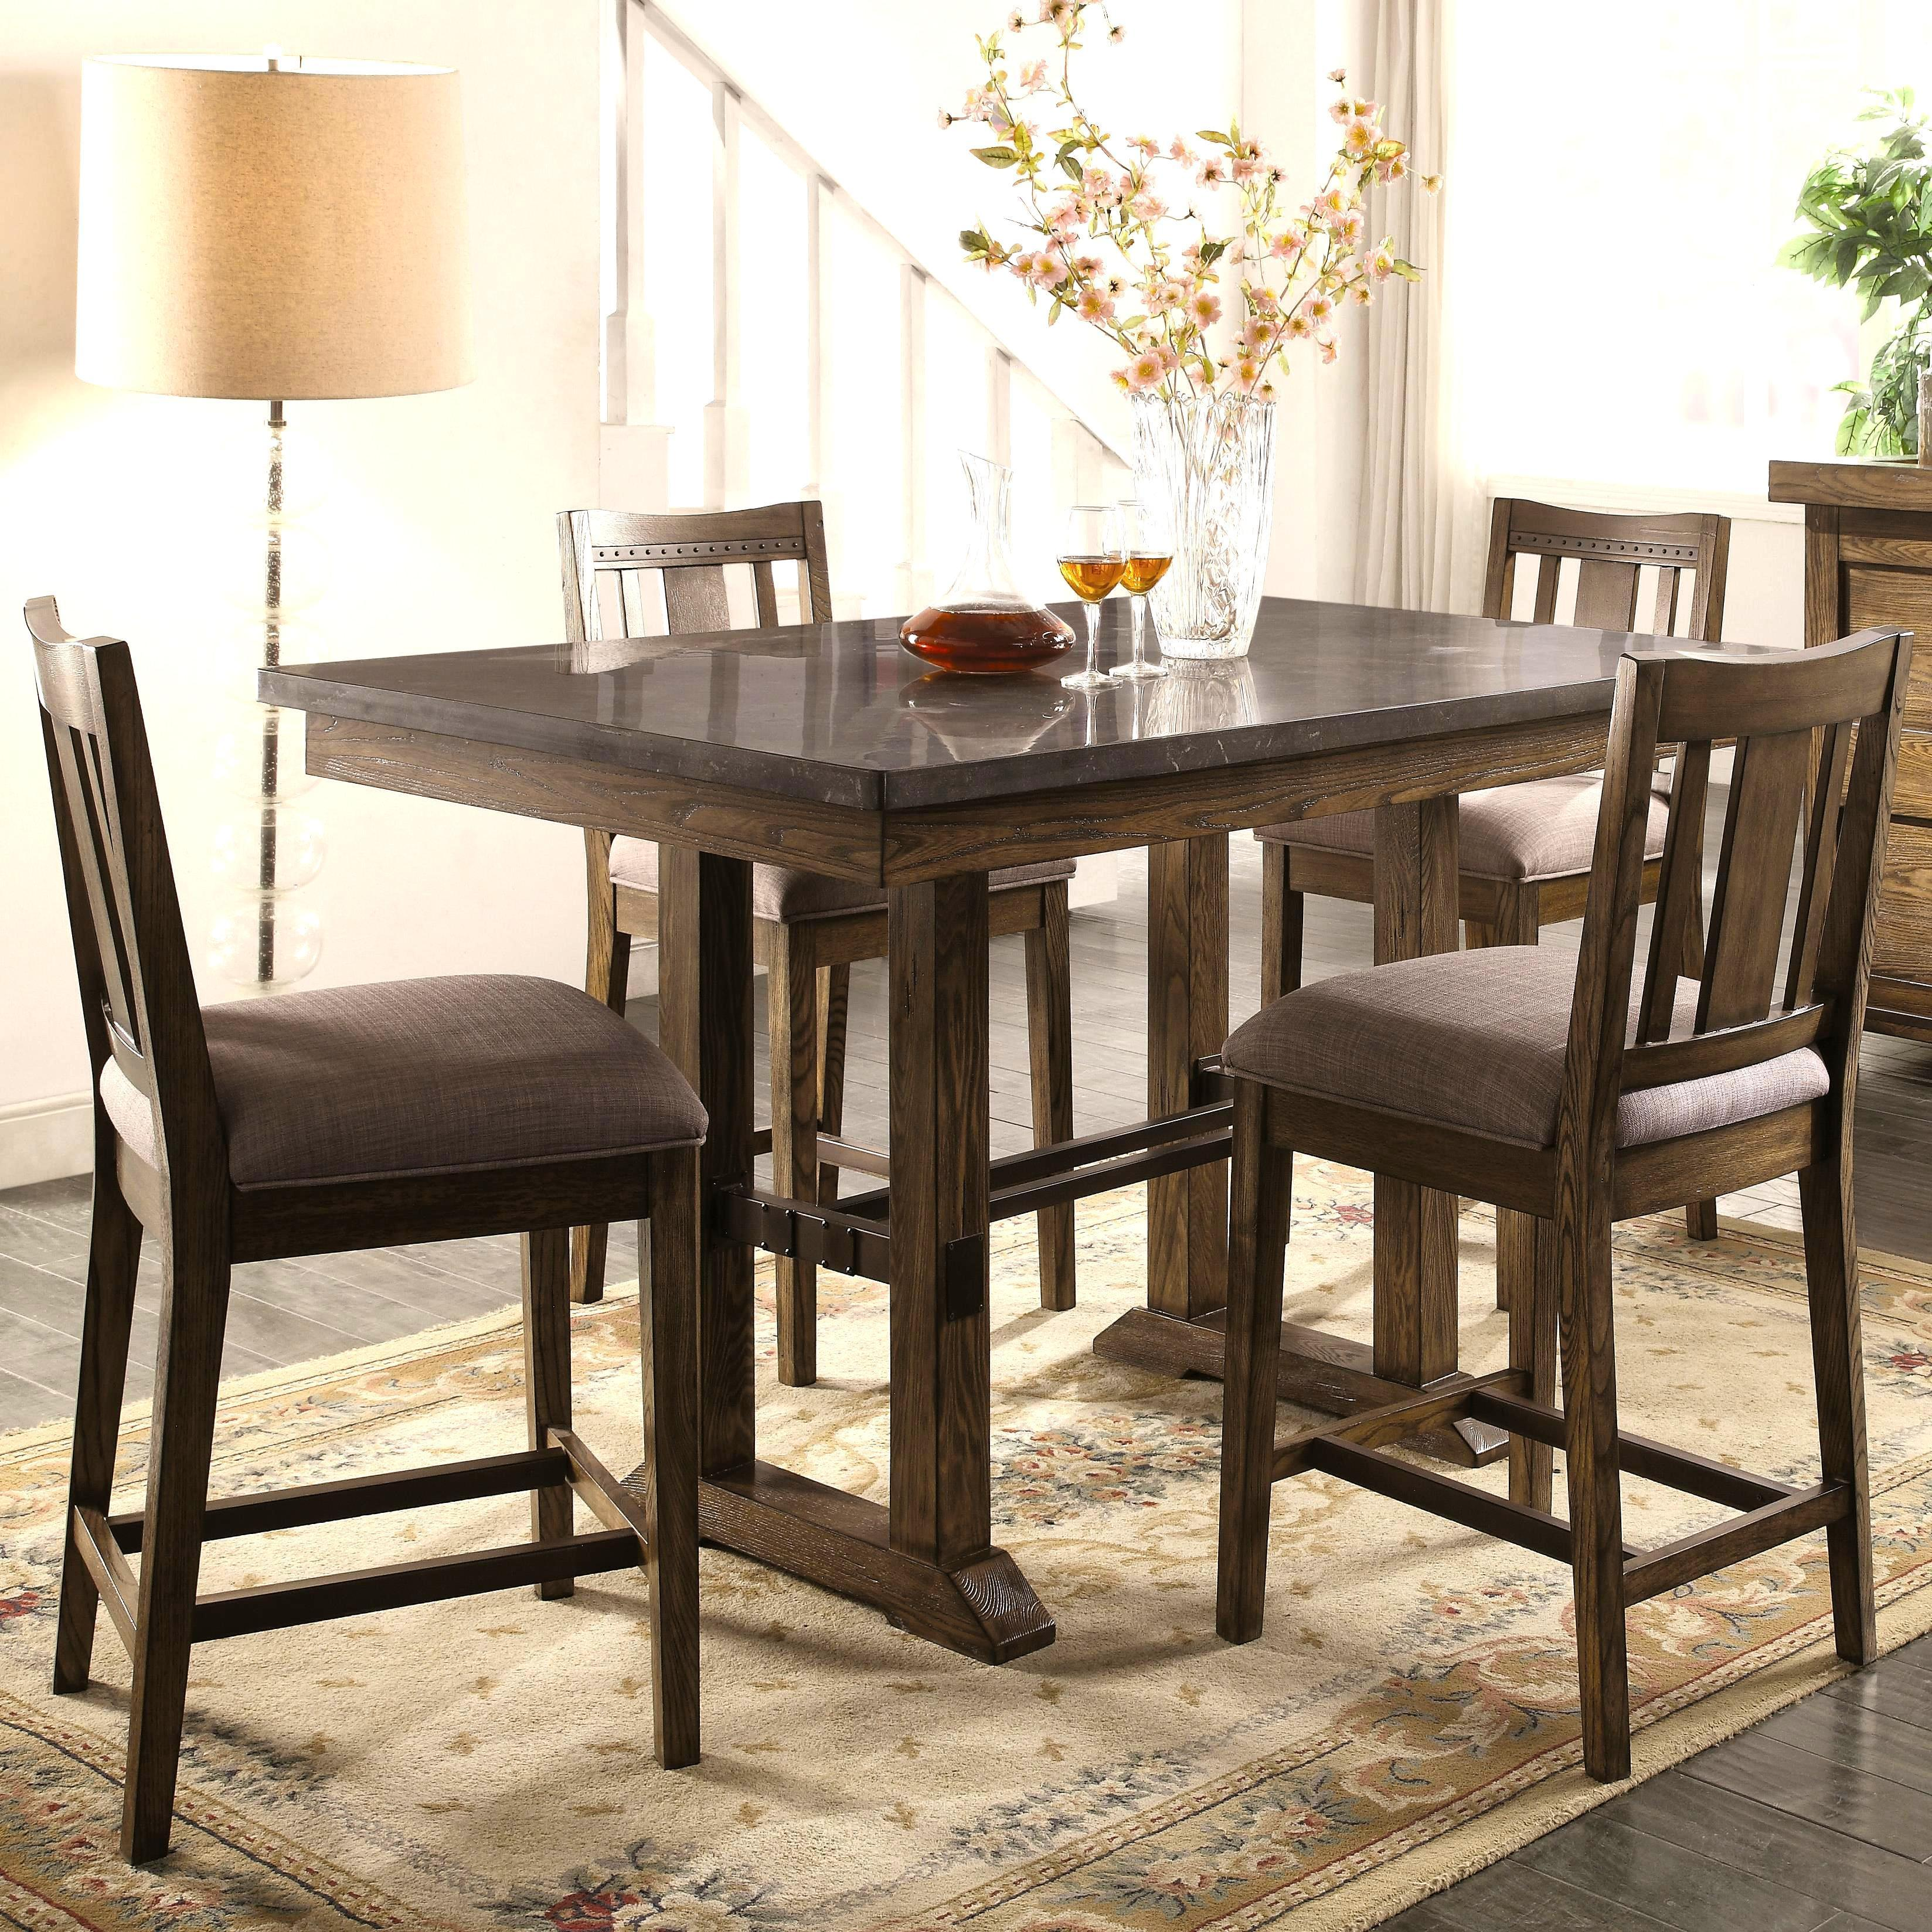 Architectural Industrial Rustic Design Counter Height Dining Set